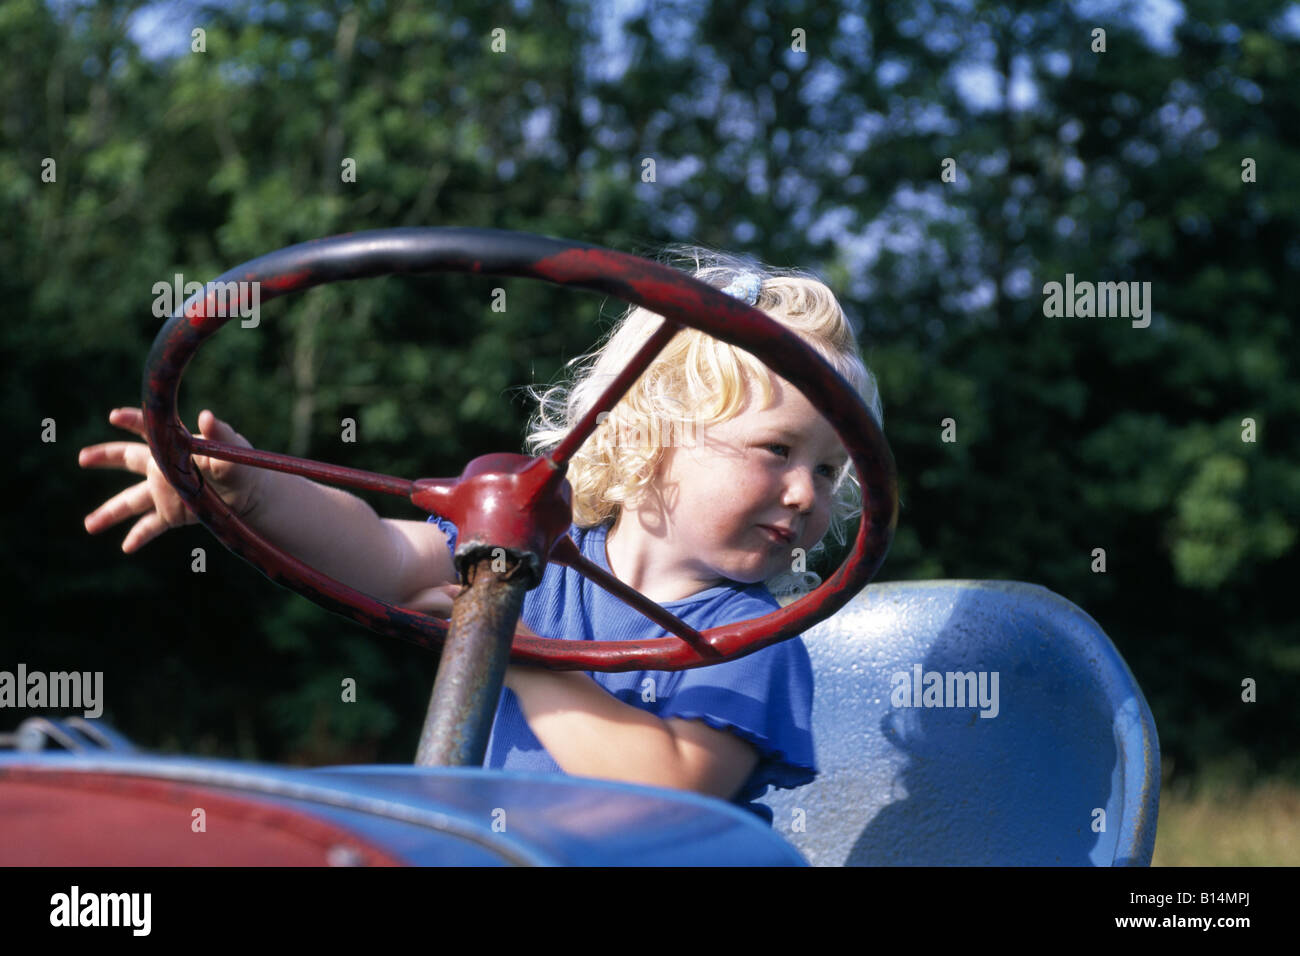 Girl playing on a tractor, open air museum, Angeln, Unewatt, Schleswig Holstein, Germany - Stock Image